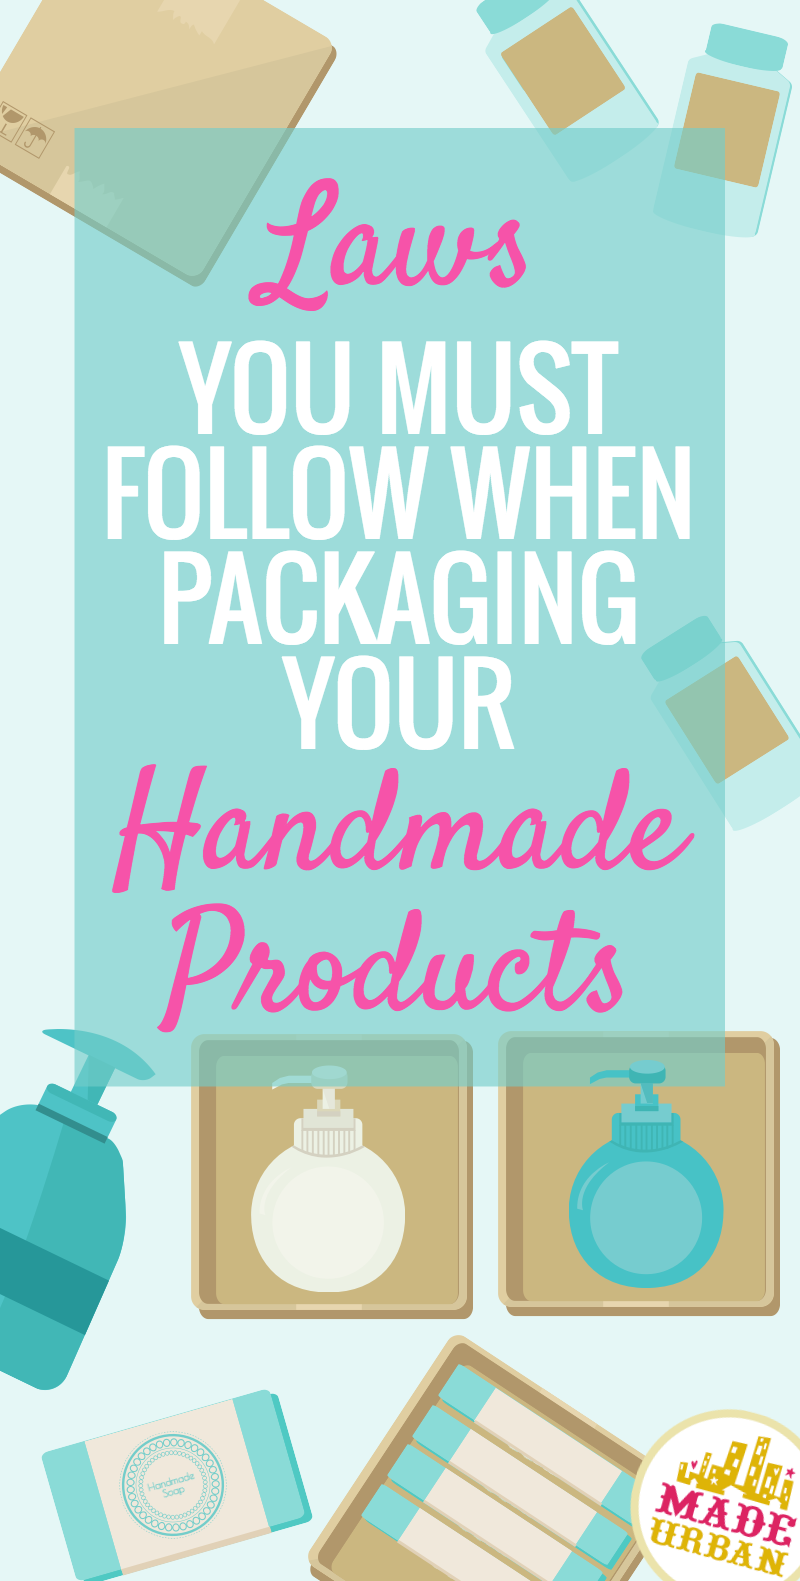 LAWS FOR PACKAGING HANDMADE PRODUCTS